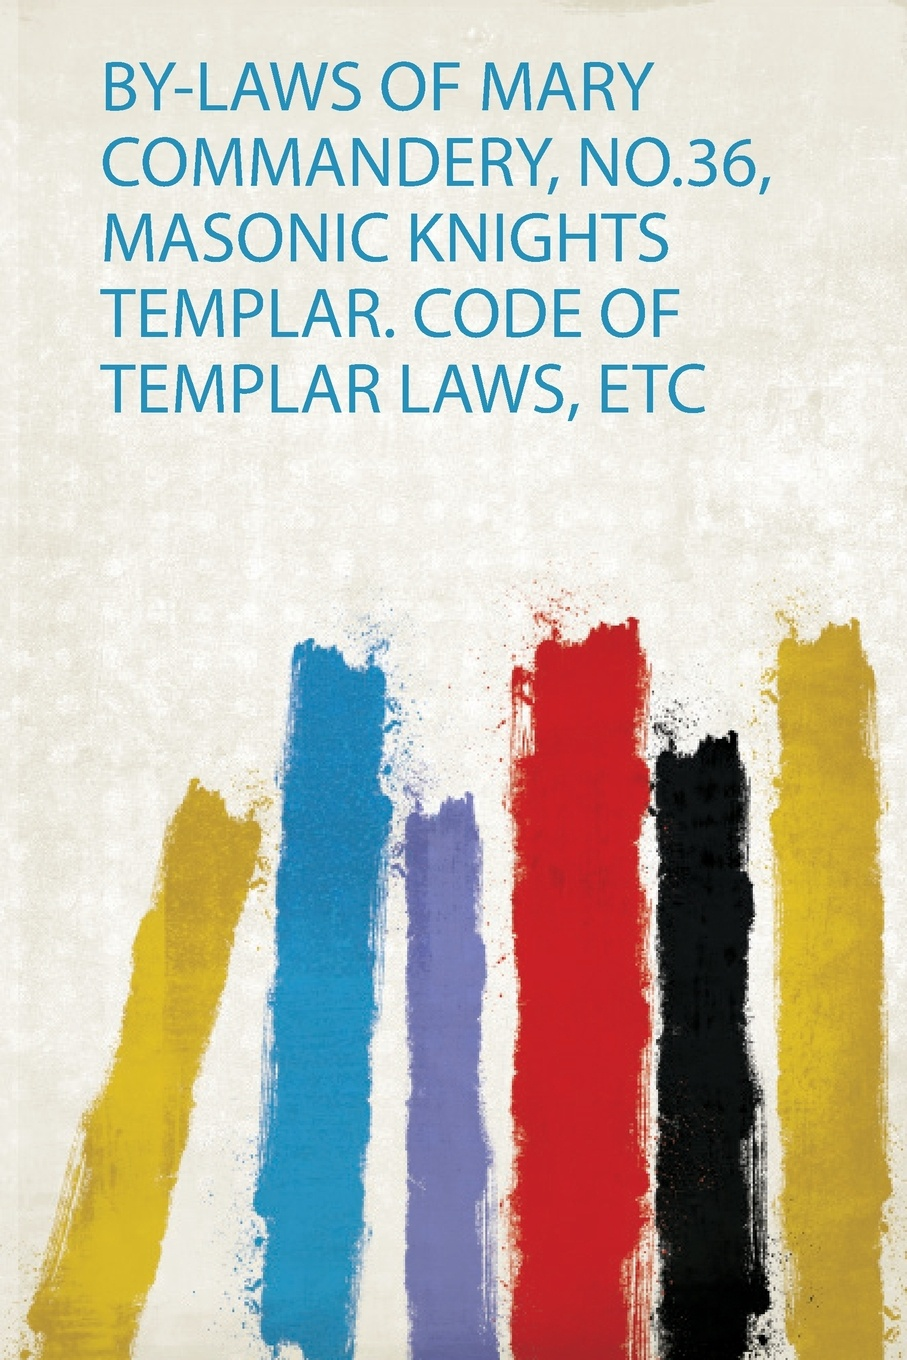 By-Laws of Mary Commandery, No.36, Masonic Knights Templar. Code of Templar Laws, Etc christopher hodapp the templar code for dummies